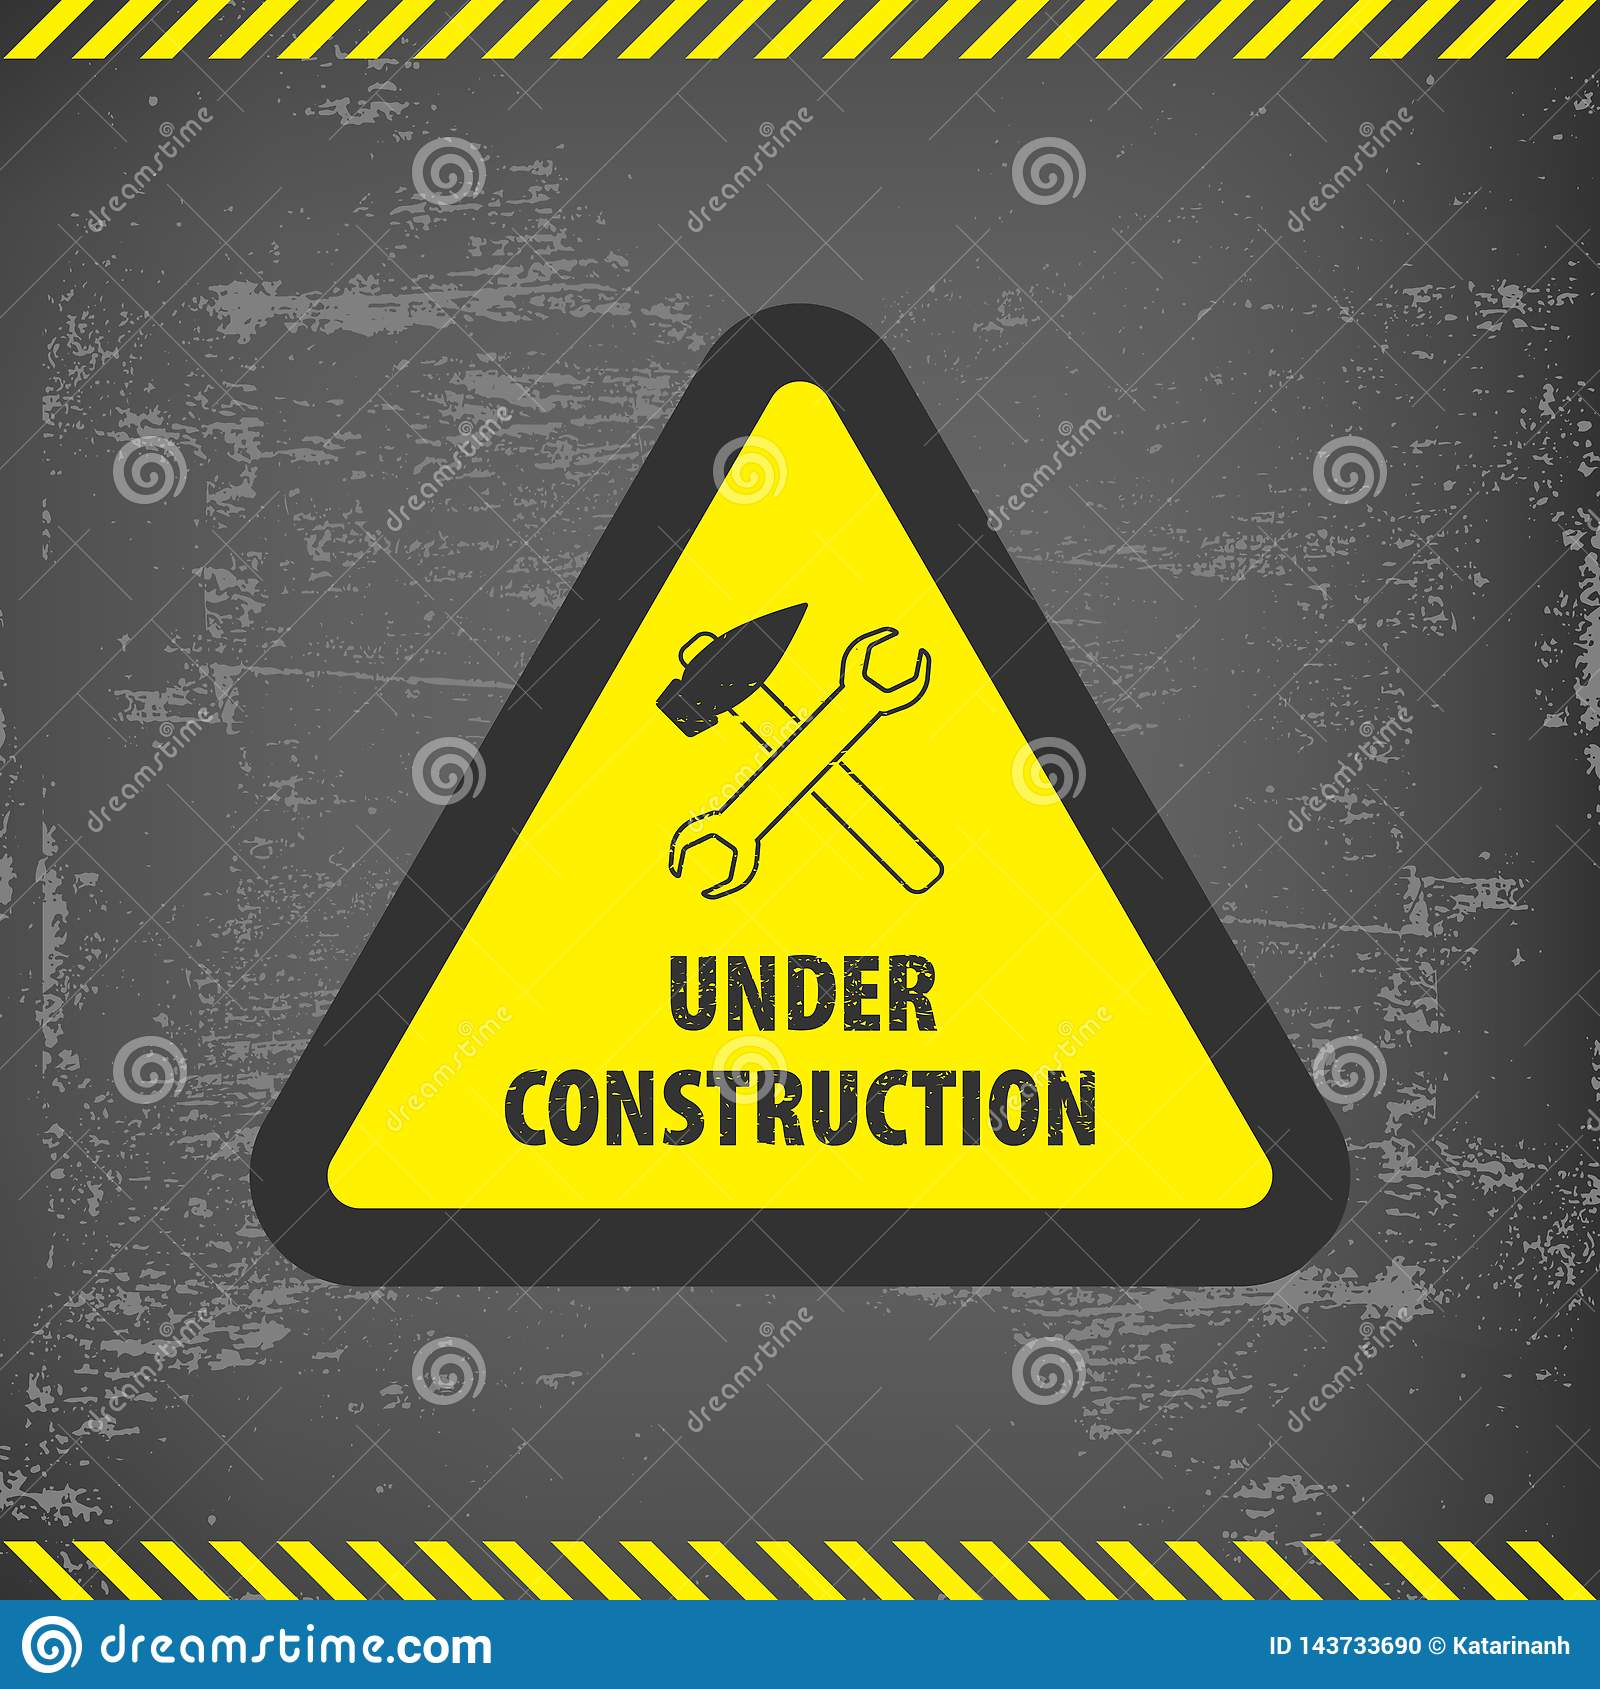 Under construction sign on gray ground background. Vector illustration for website. Under construction triangle with black and yel